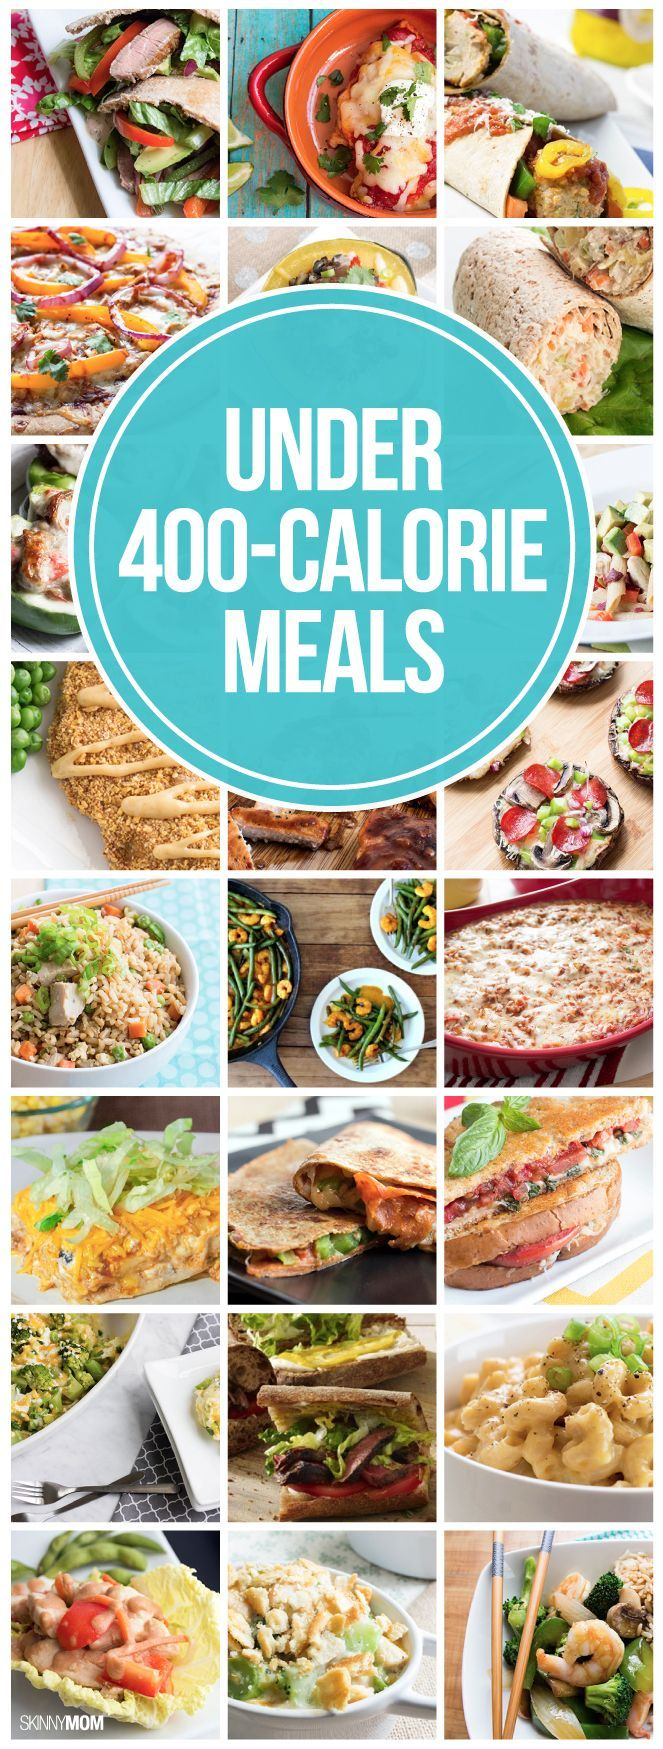 RECIPES UNDER 400 CALORIES: 40 dinners your family will LOVE! Which recipe are you most excited to try?